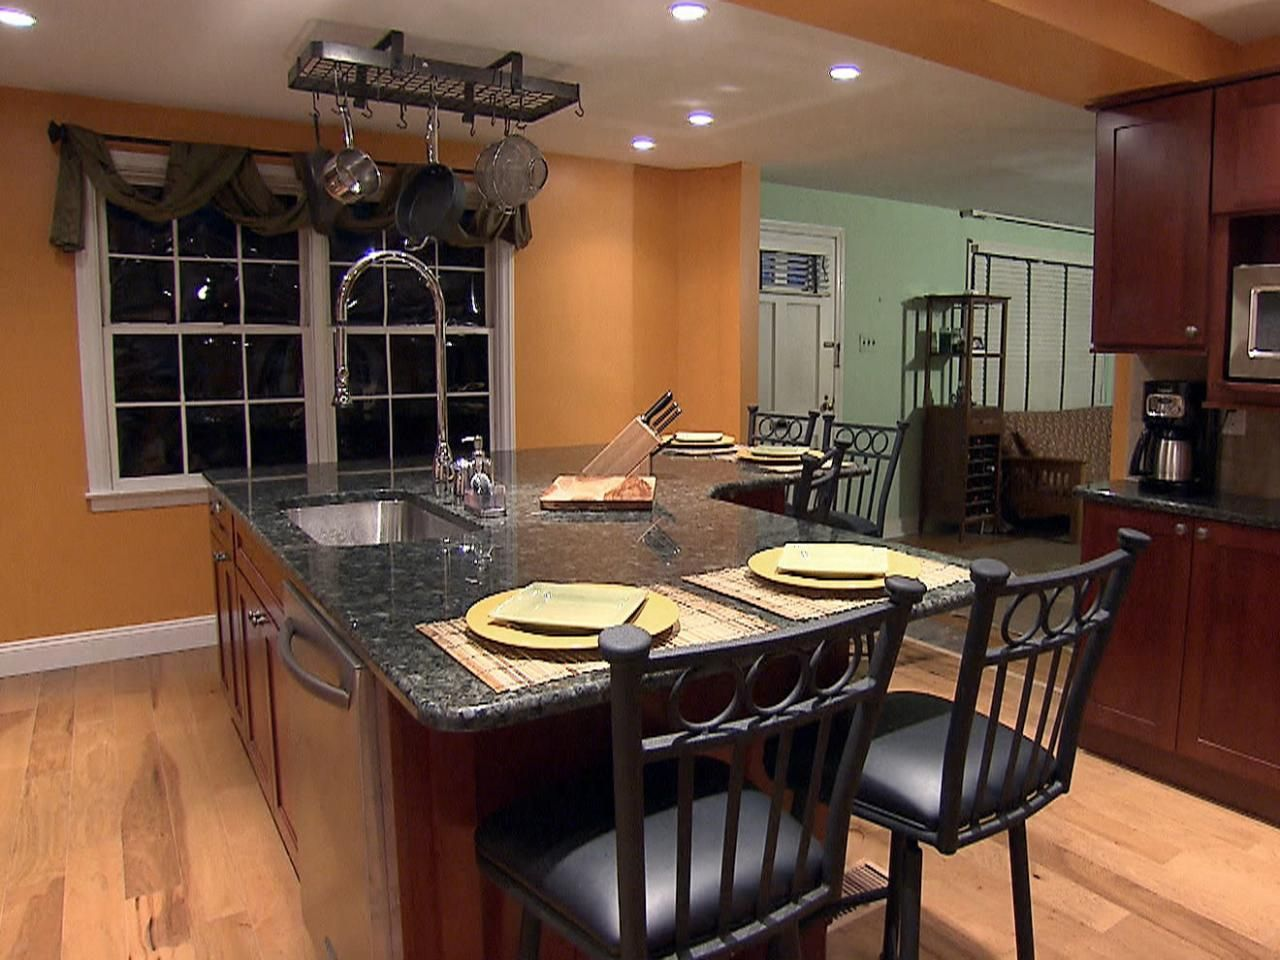 4 seat kitchen island cabinet ideas for kitchens check more at http www entropiads com 4 seat kitchen island